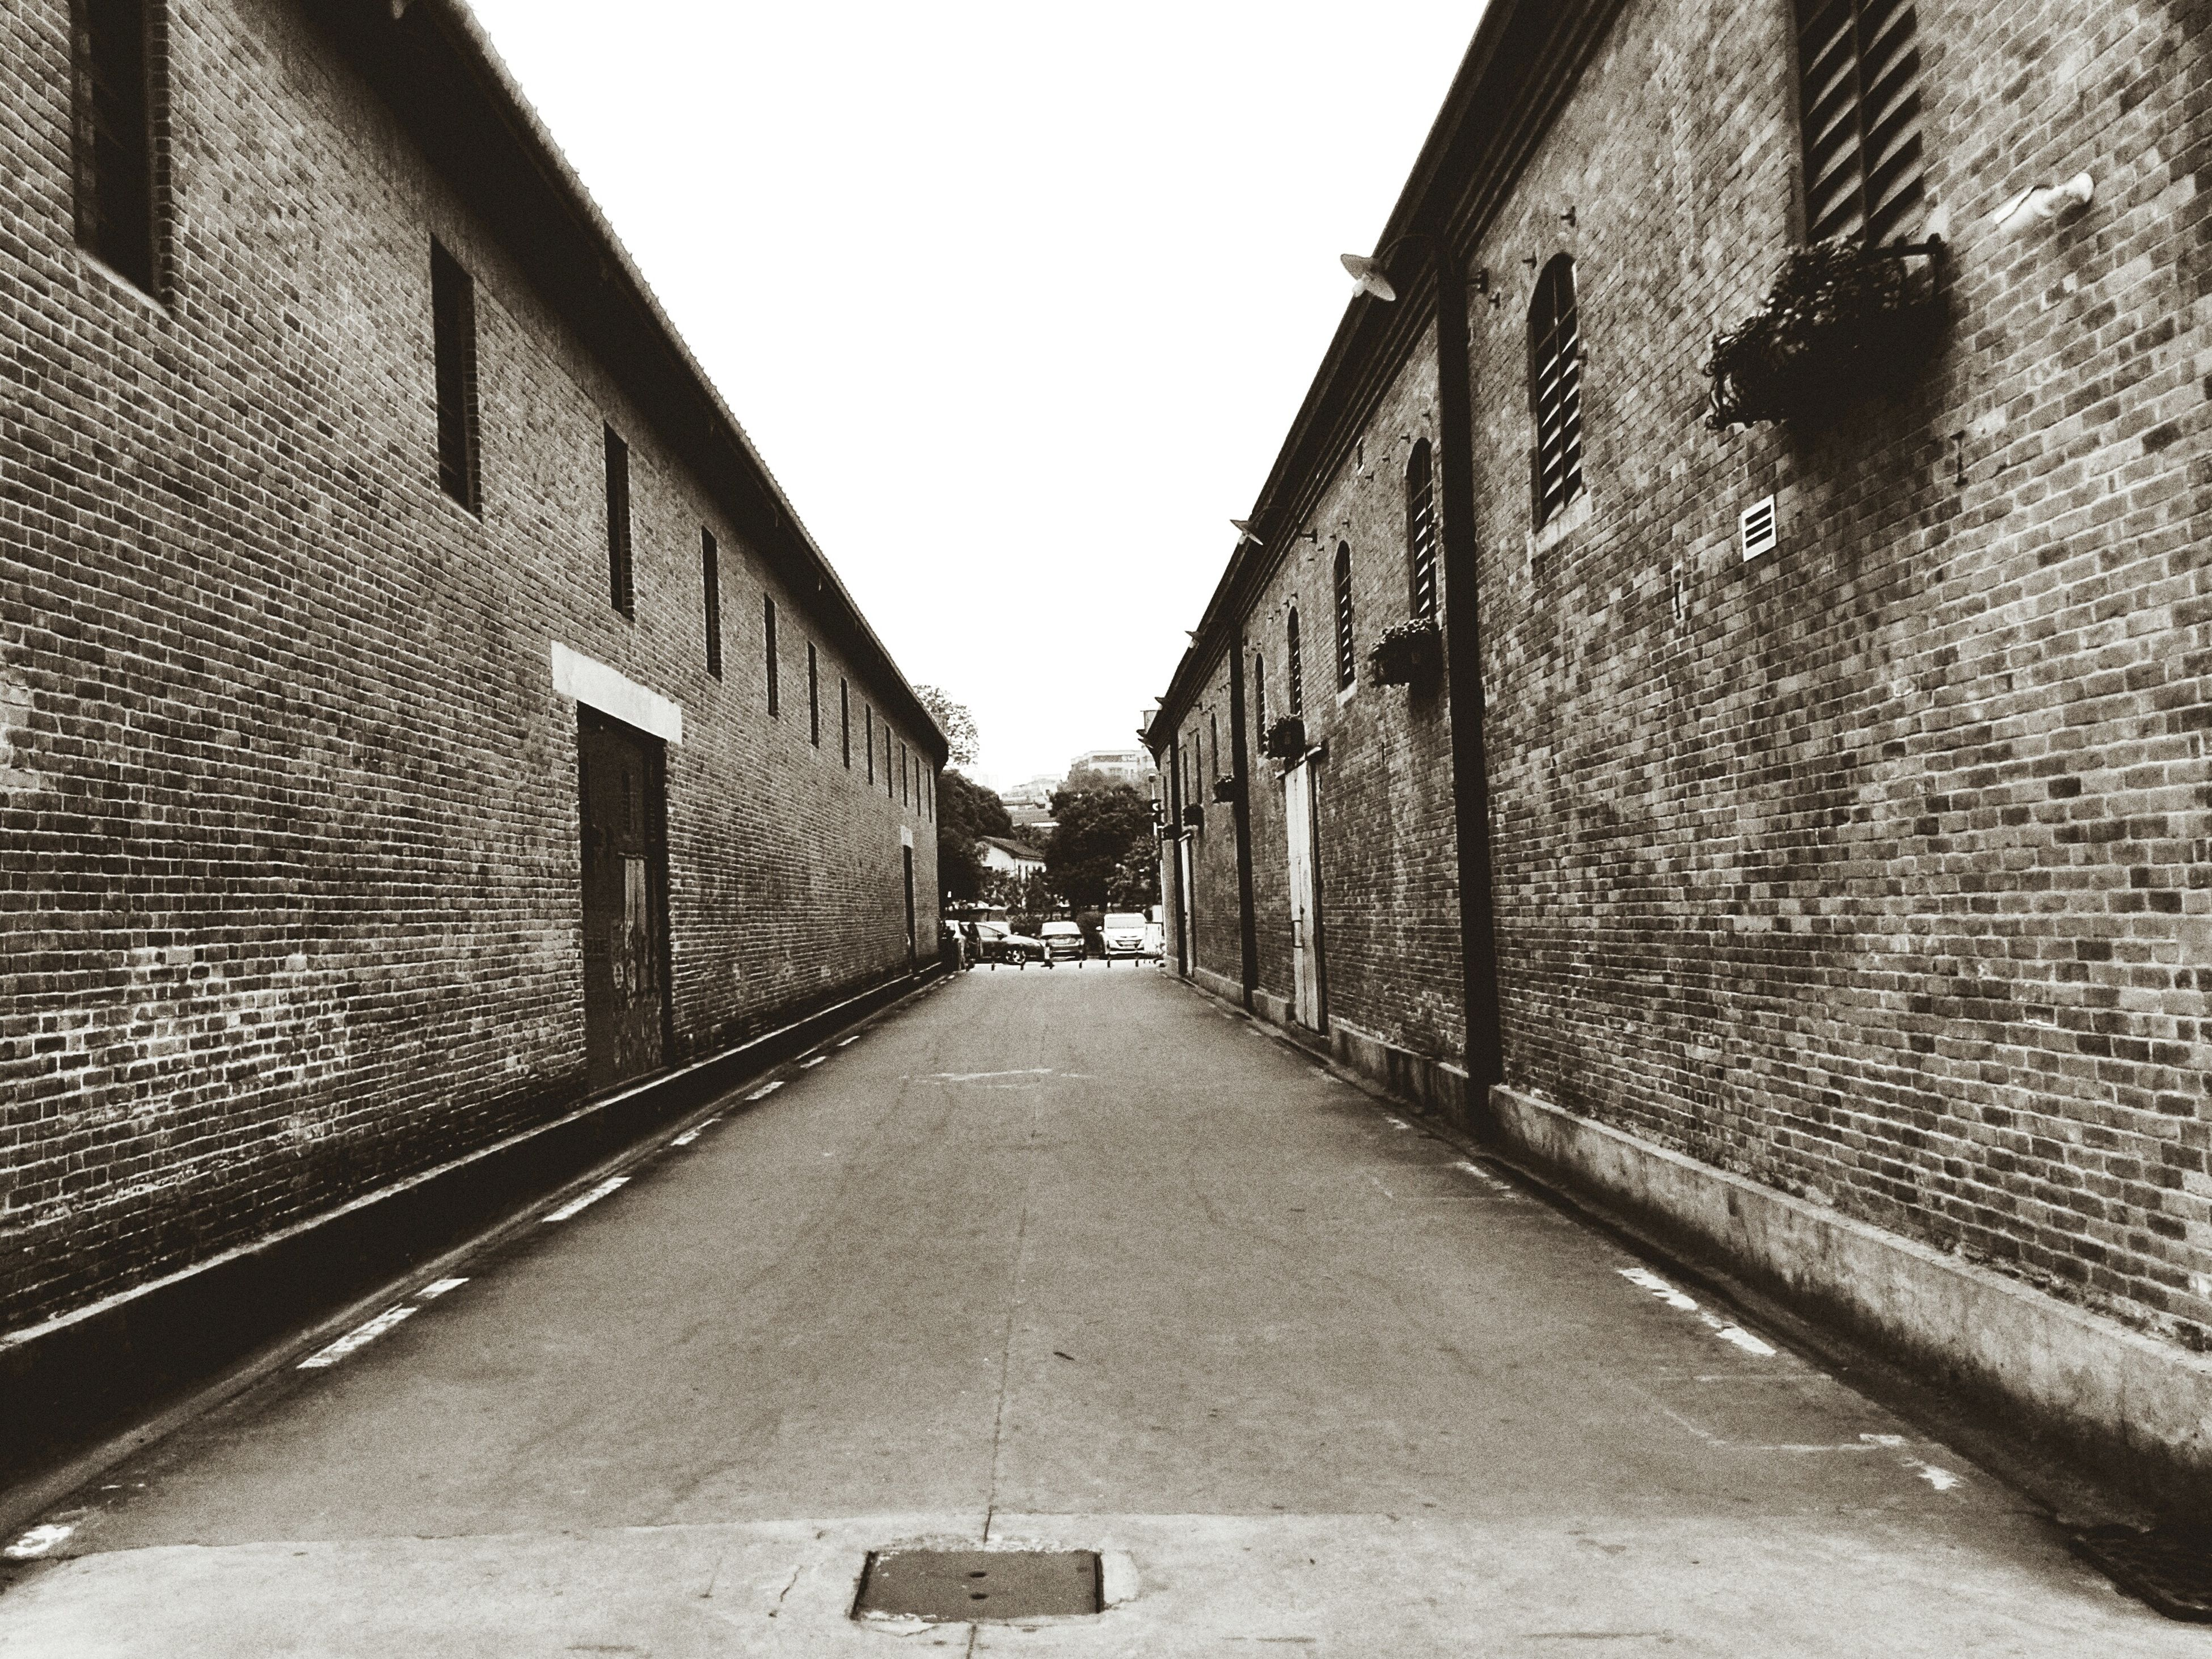 architecture, built structure, building exterior, the way forward, diminishing perspective, vanishing point, building, narrow, brick wall, clear sky, cobblestone, alley, wall - building feature, street, long, city, day, residential building, residential structure, walkway